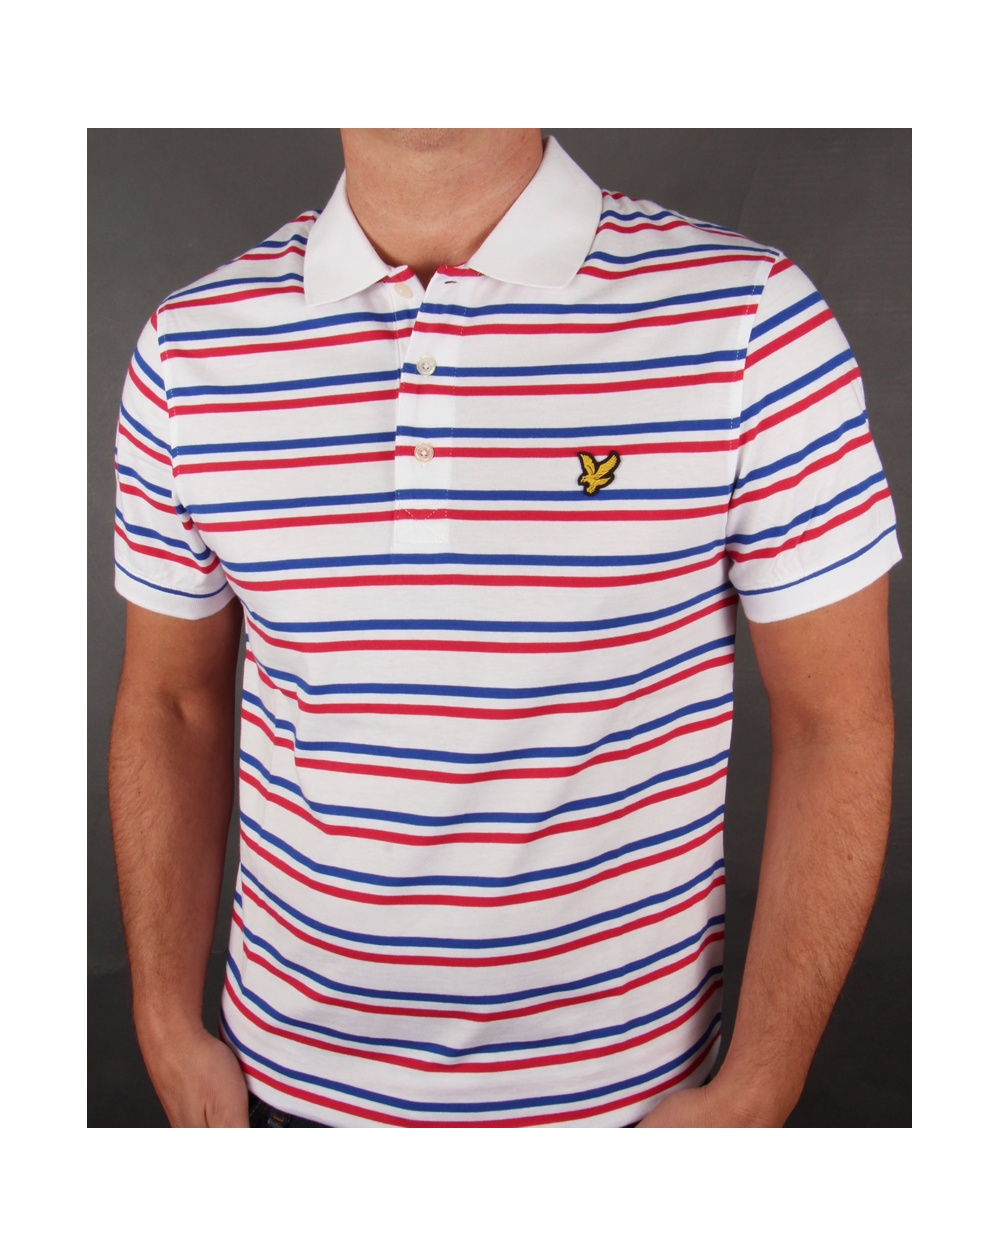 Lyle and scott tram stripe polo shirt white blue red for Red blue striped shirt